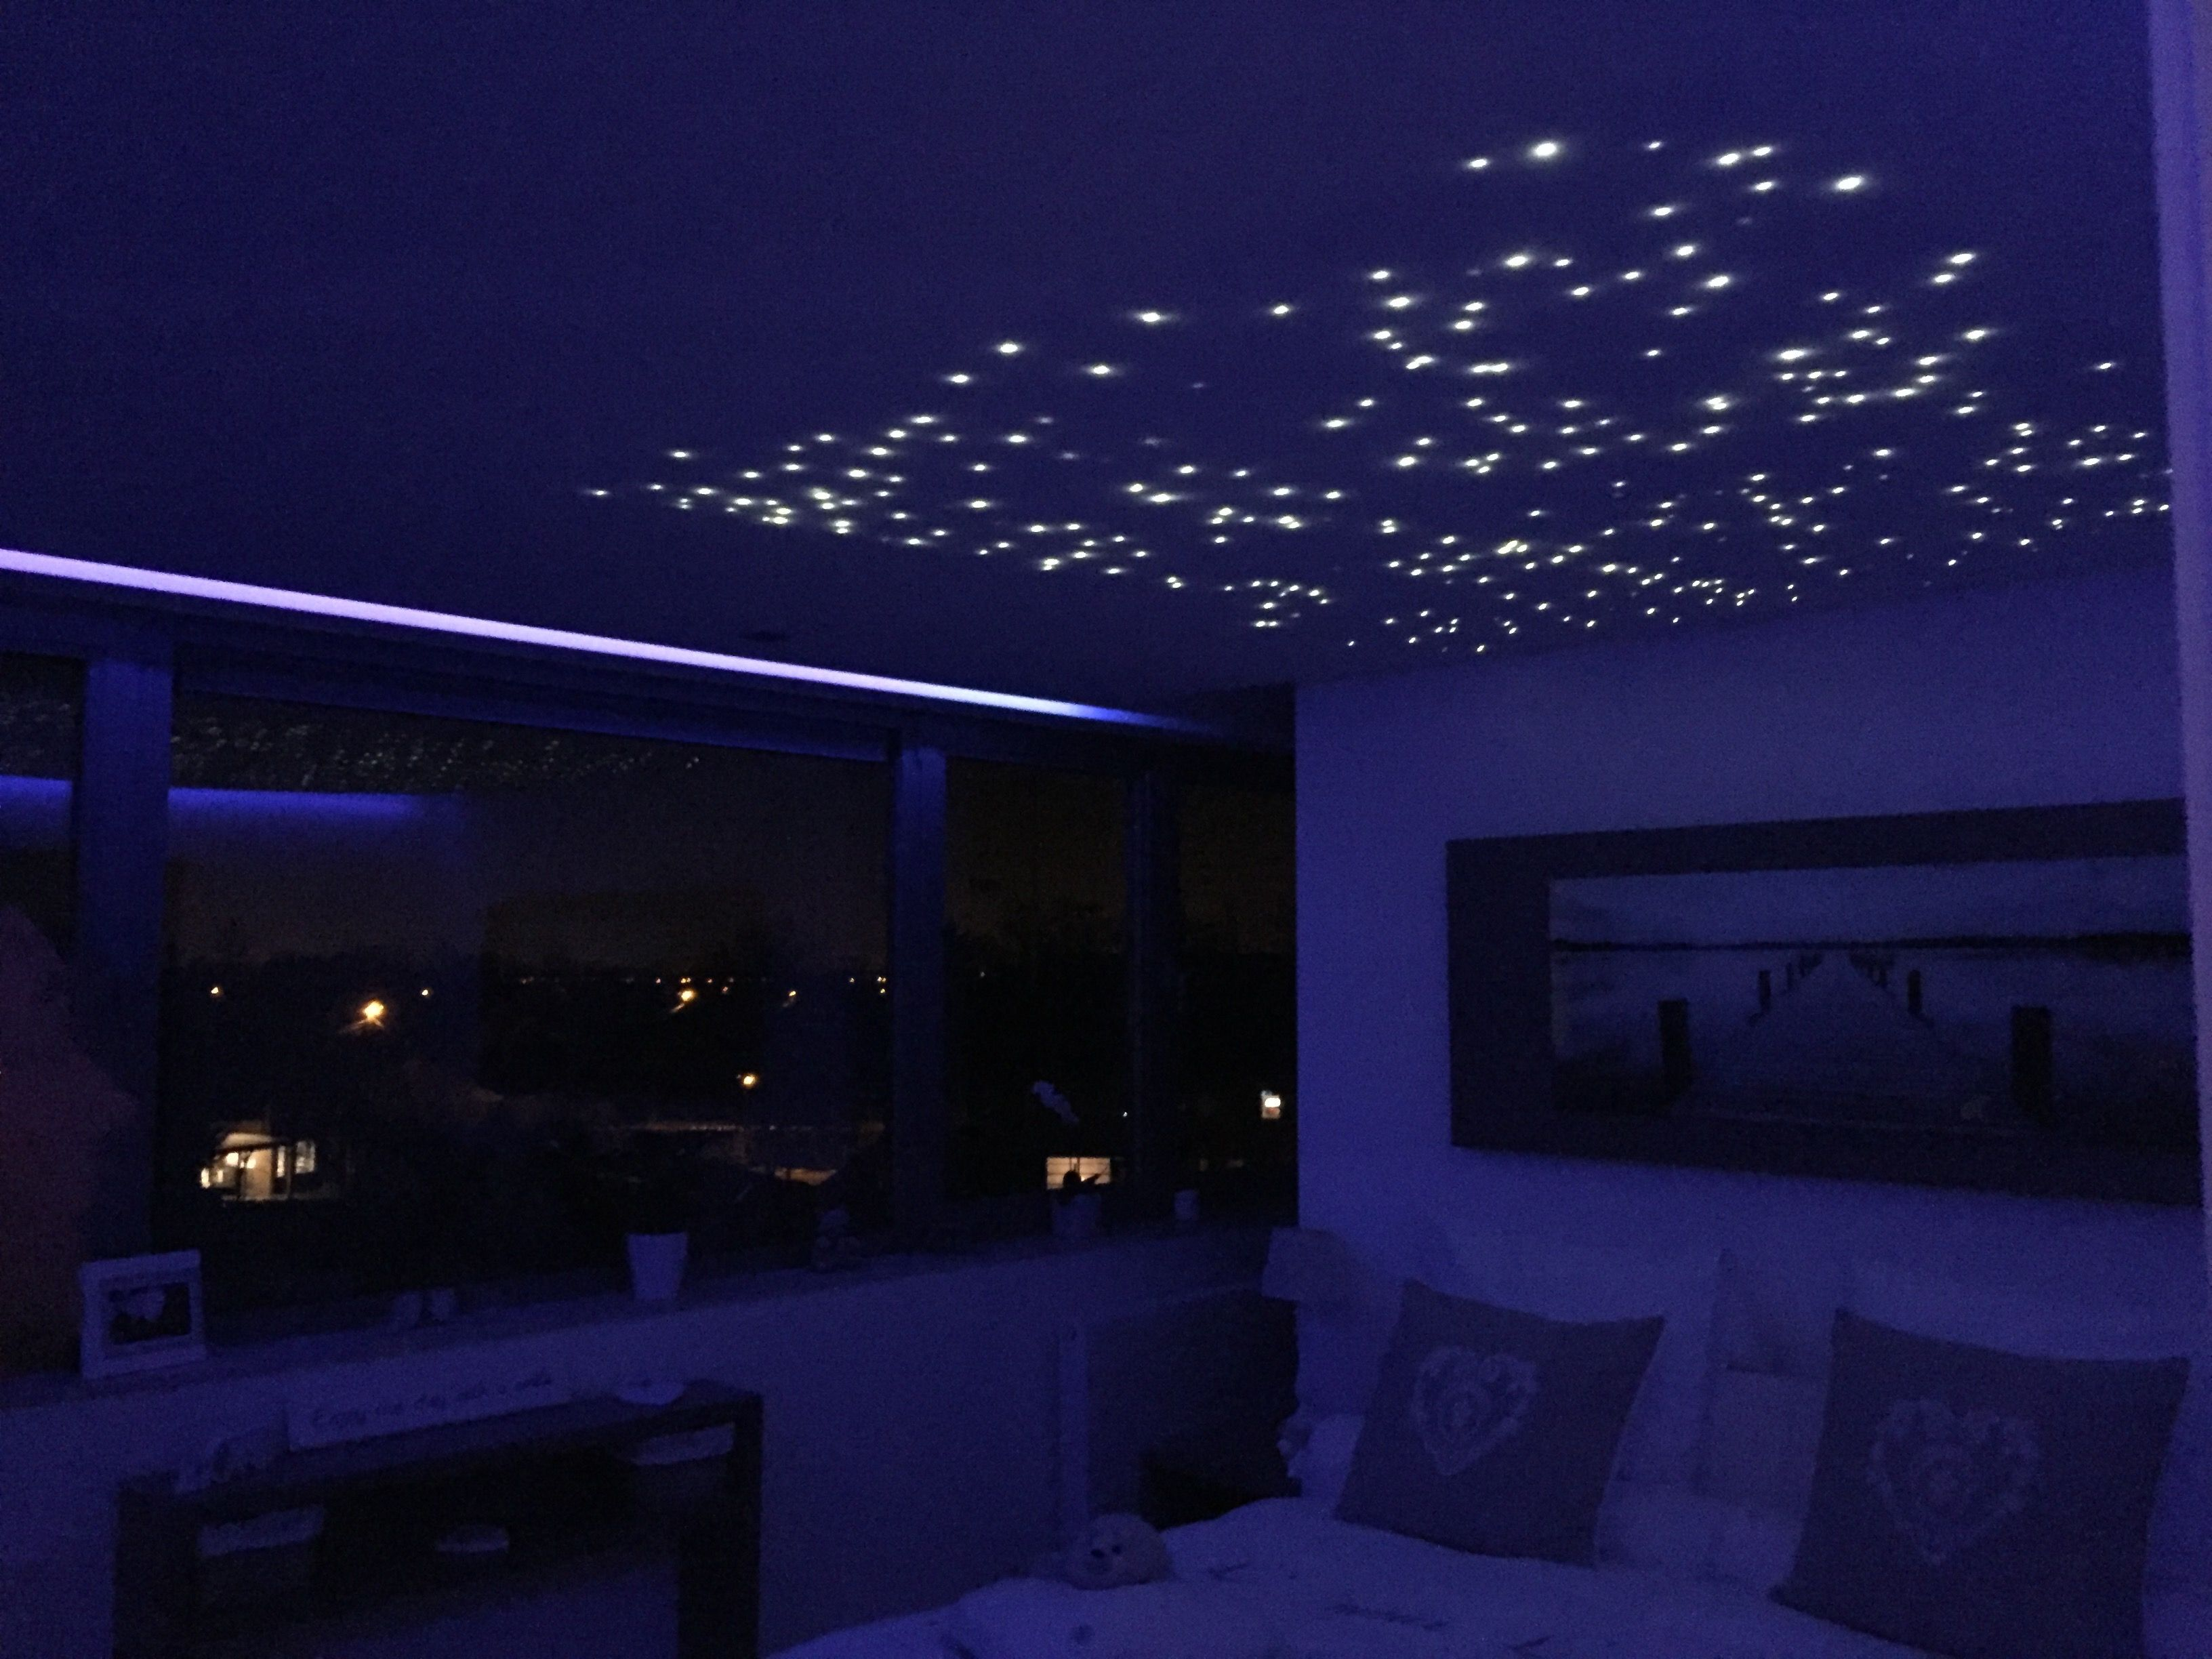 Led In Slaapkamer : Spanplafond met led sterrenhemel led glassfiber in slaapkamer